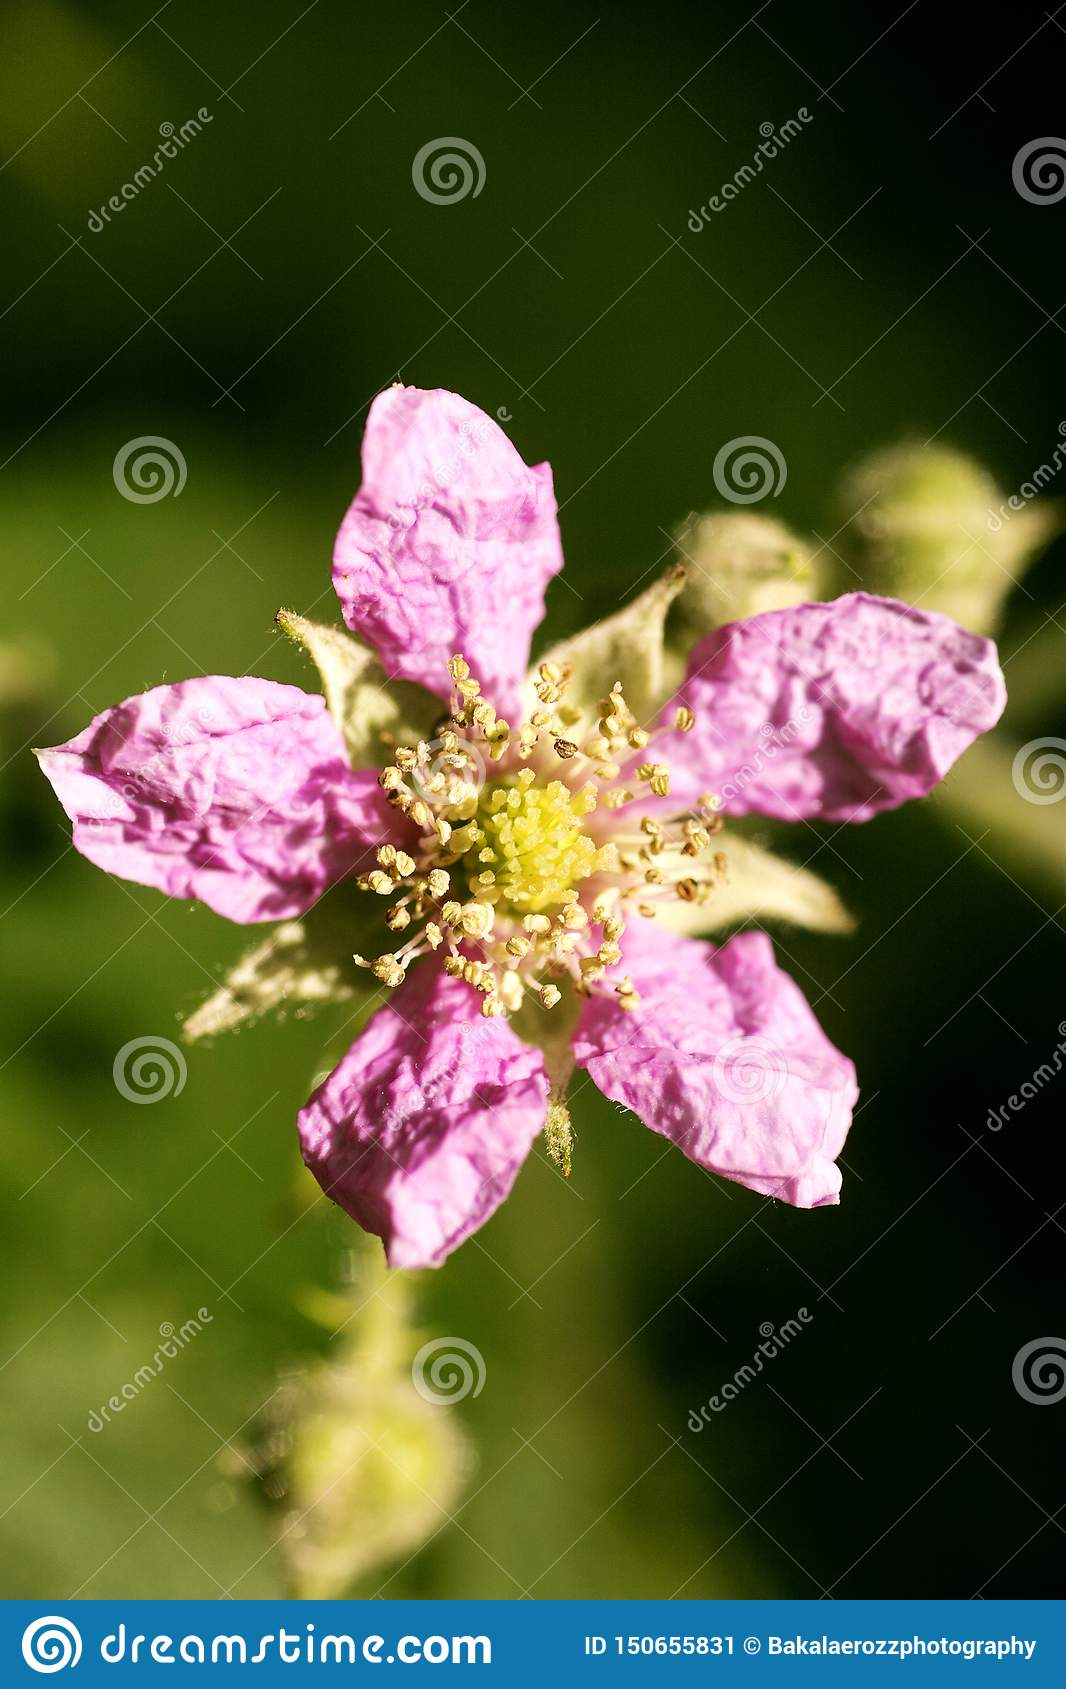 Flower Rubus occidentalis Rosaceae family macro background fine art in high quality prints products fifty megapixels